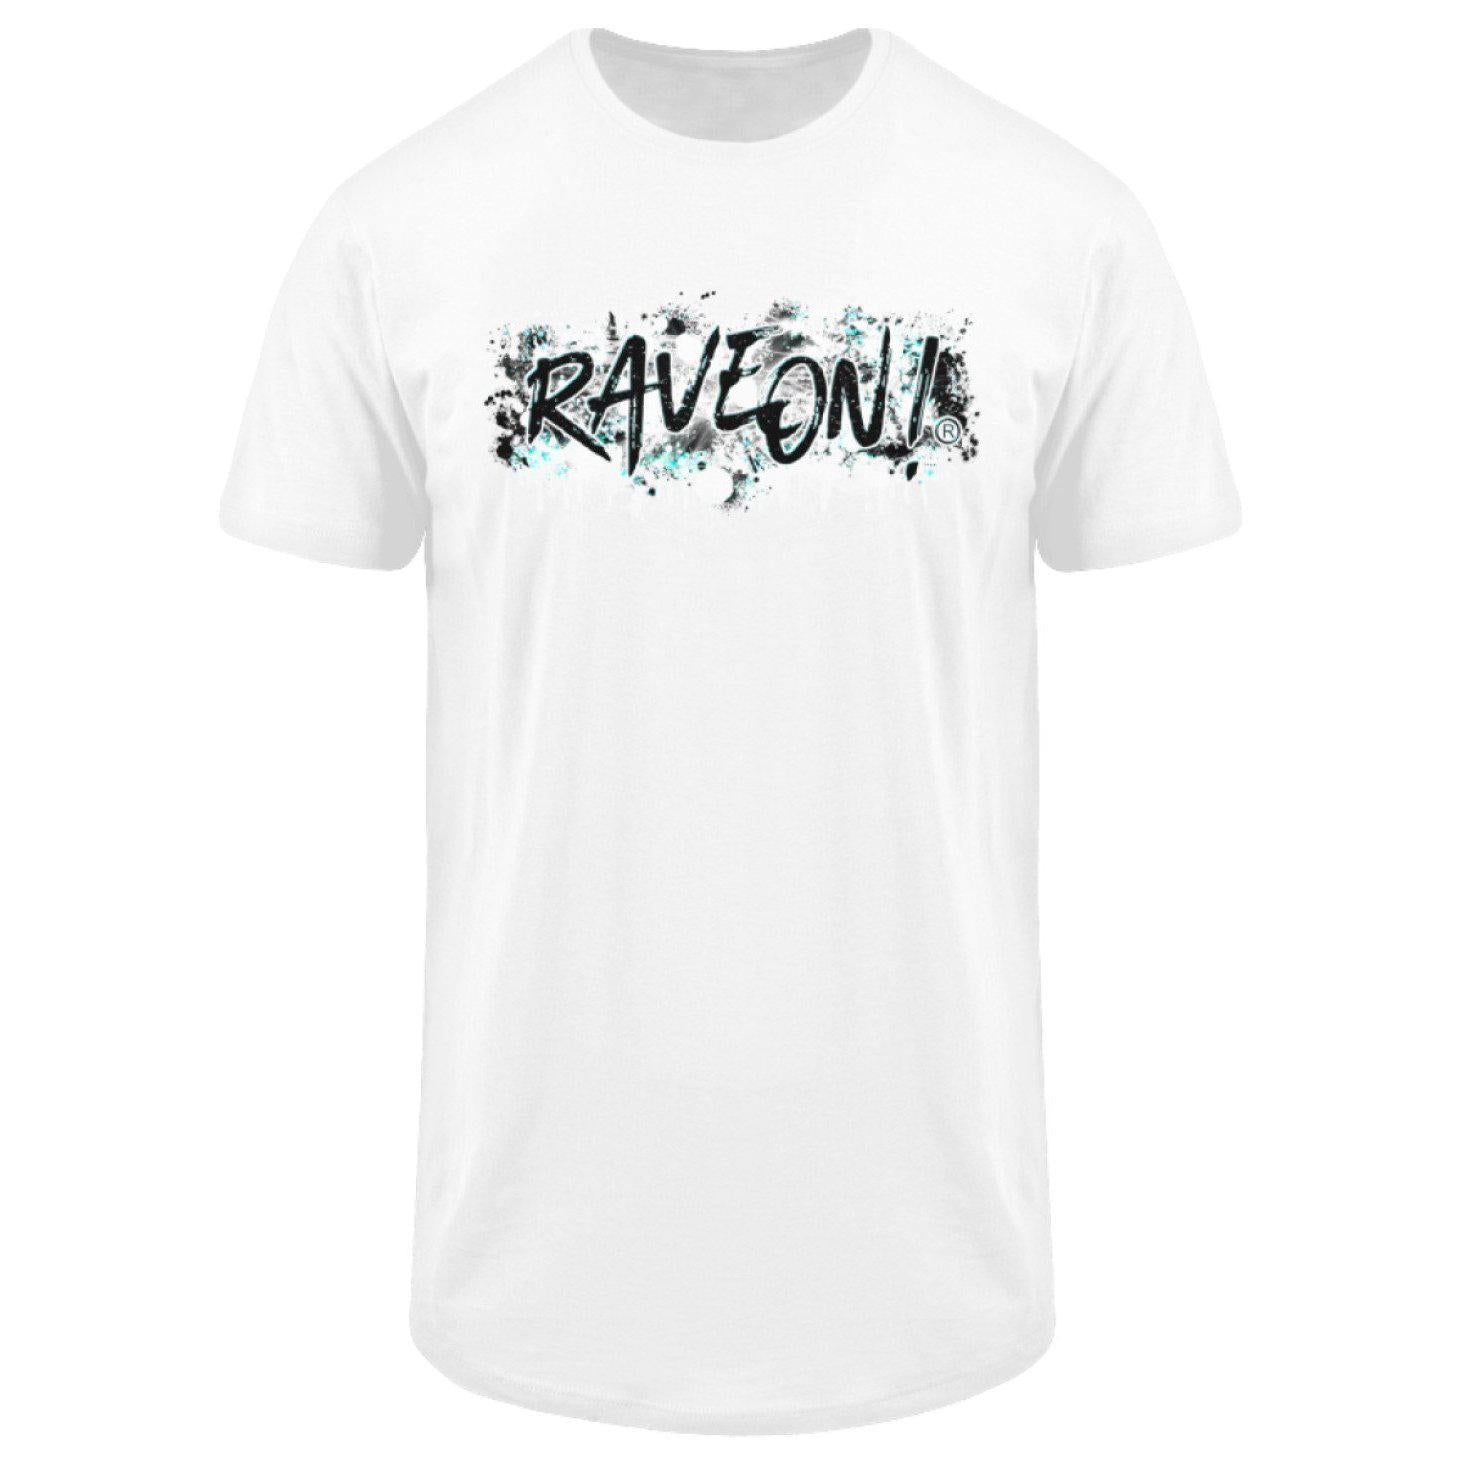 Rave On! Paint on white -Rave On!® - Herren Long Tee Men Long Tee White / S - Rave On!® der Club & Techno Szene Shop für Coole Junge Mode Streetwear Style & Fashion Outfits + Sexy Festival 420 Stuff